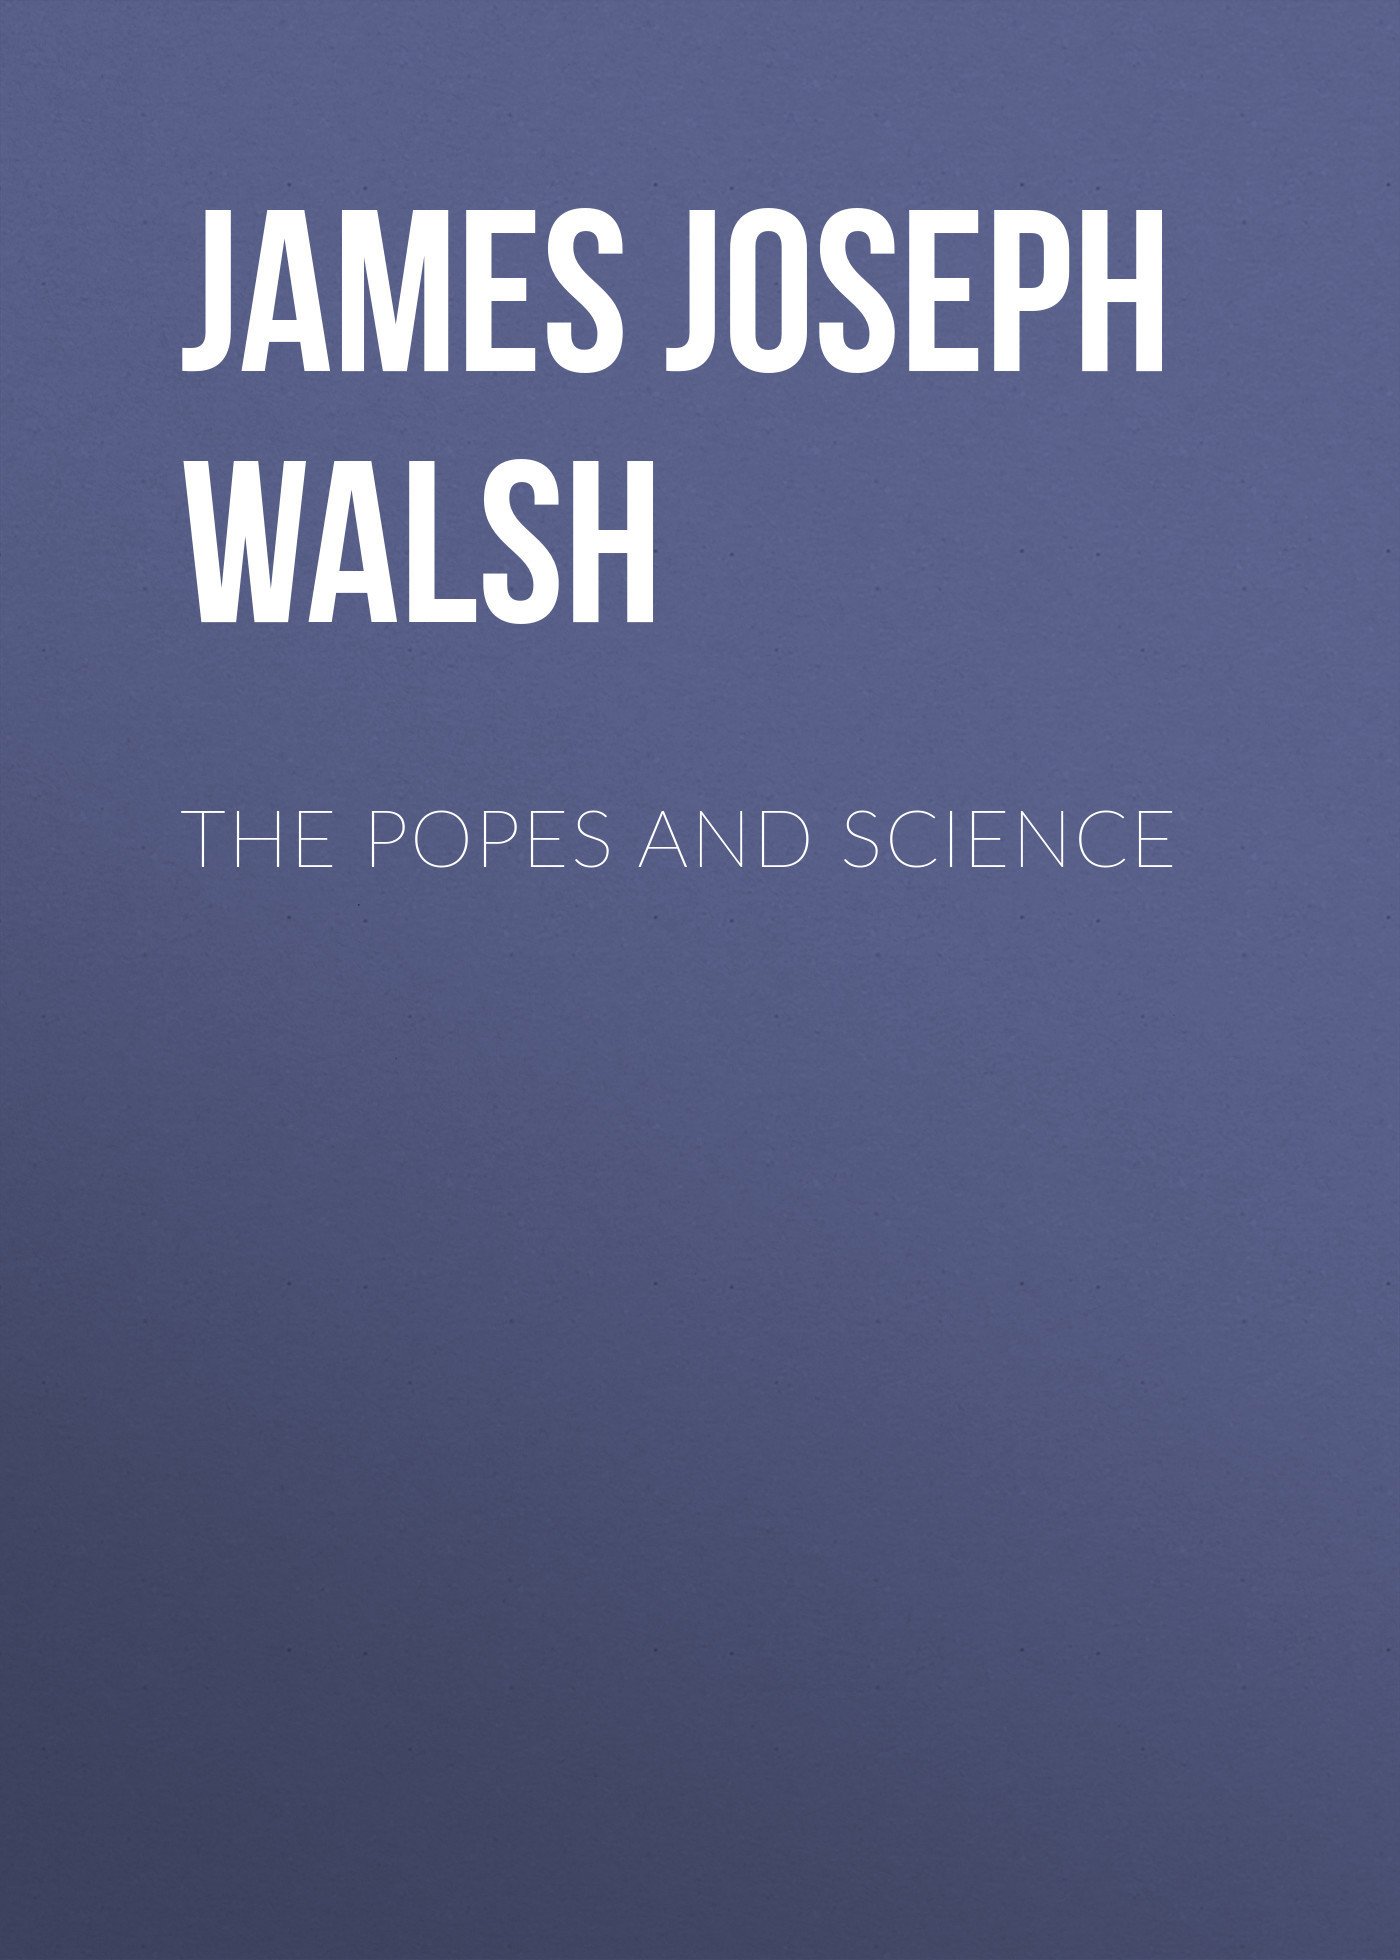 James Joseph Walsh The Popes and Science